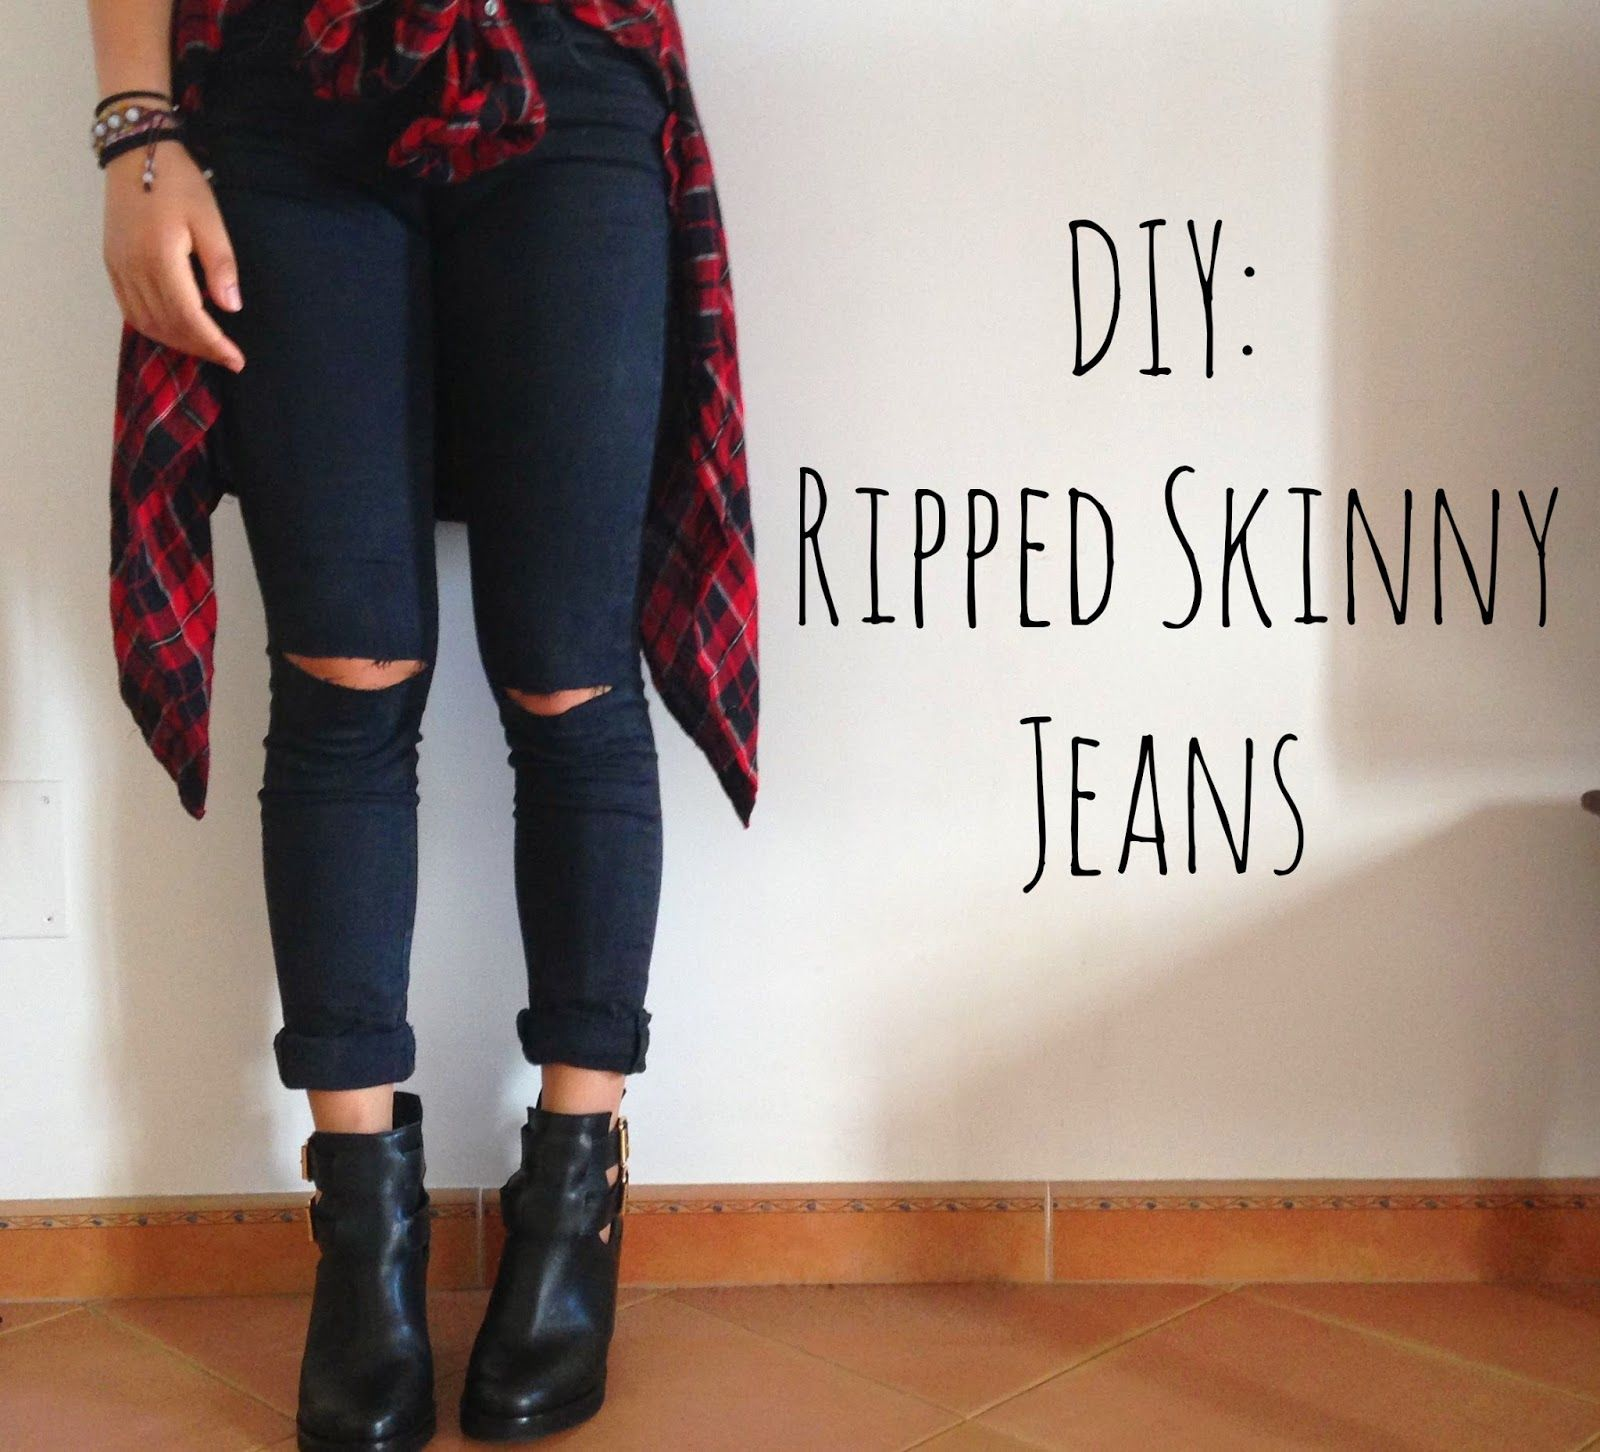 DIY Ripped (Knee) Skinny Jeans | Gettin' Crafty | Pinterest ...